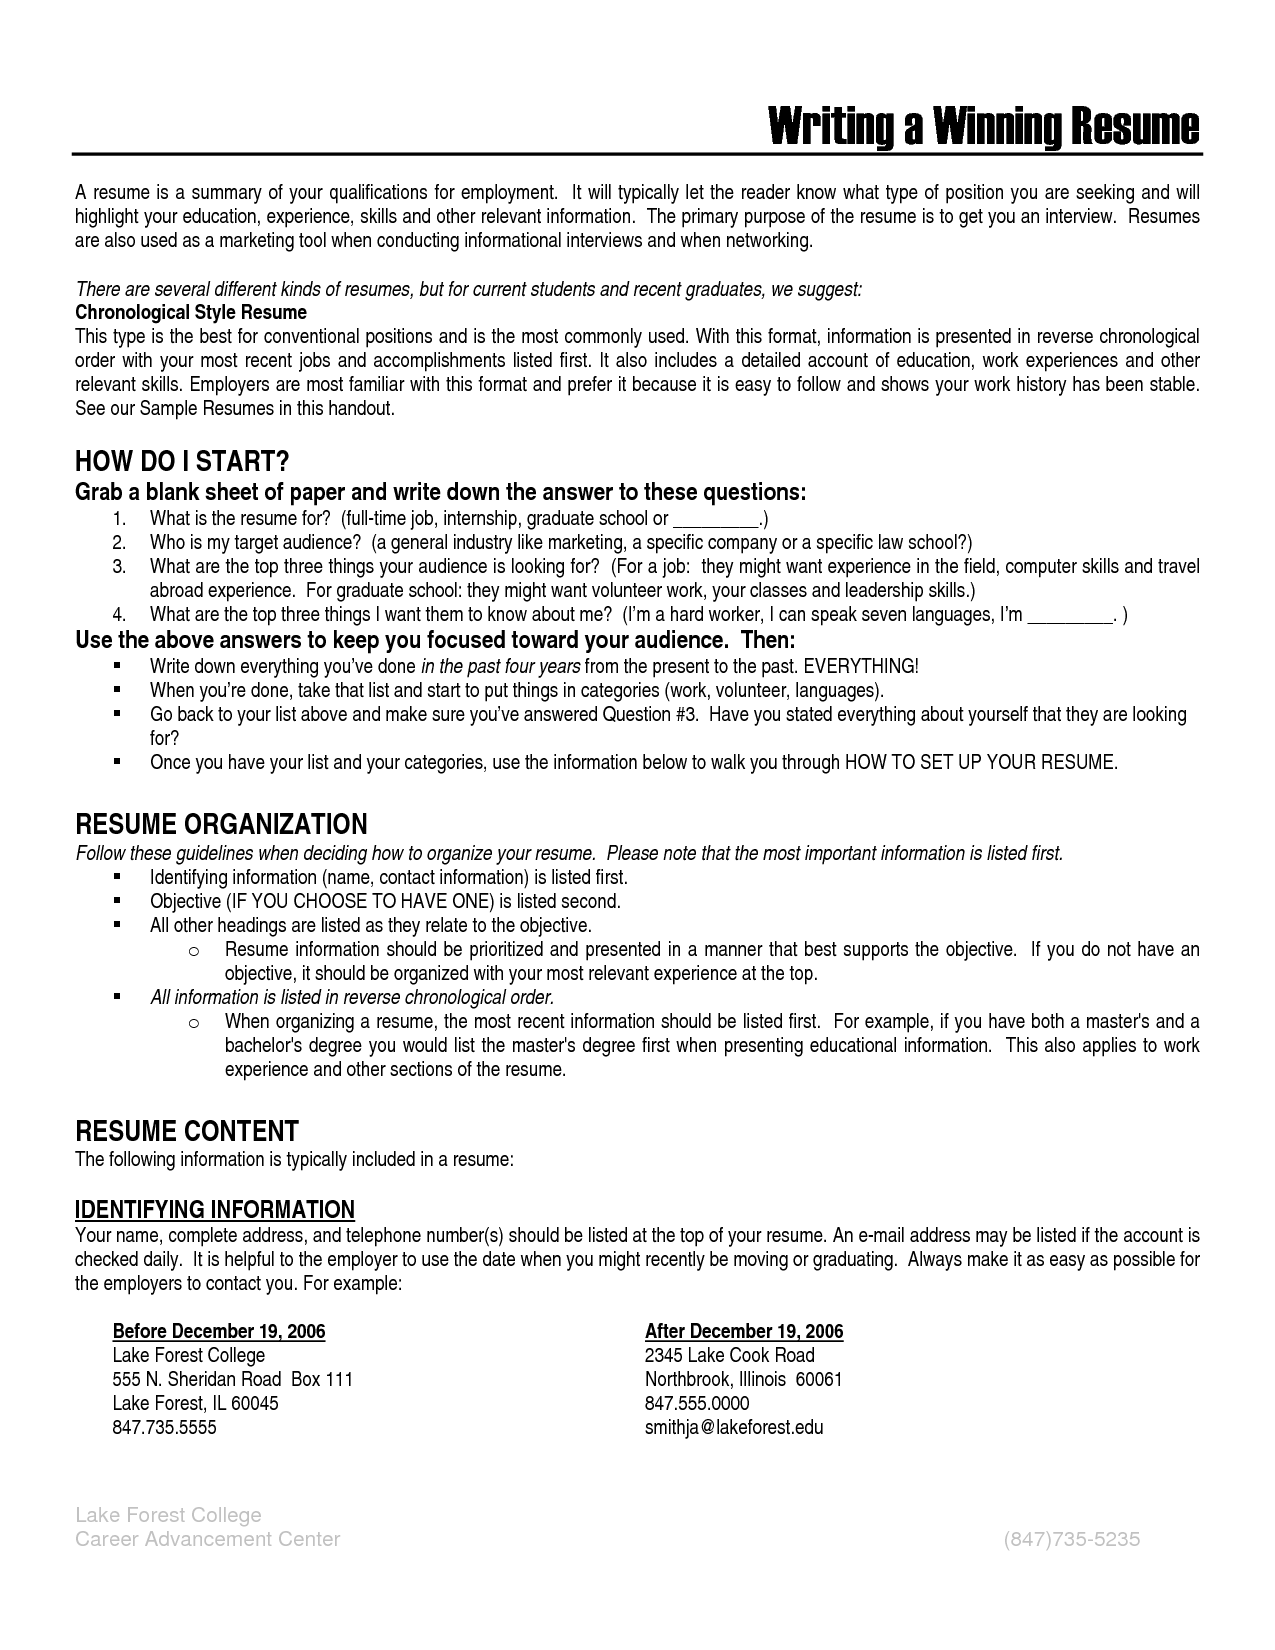 cv career history ordervolunteer work on resume free templates pdf student skills for of hotel management